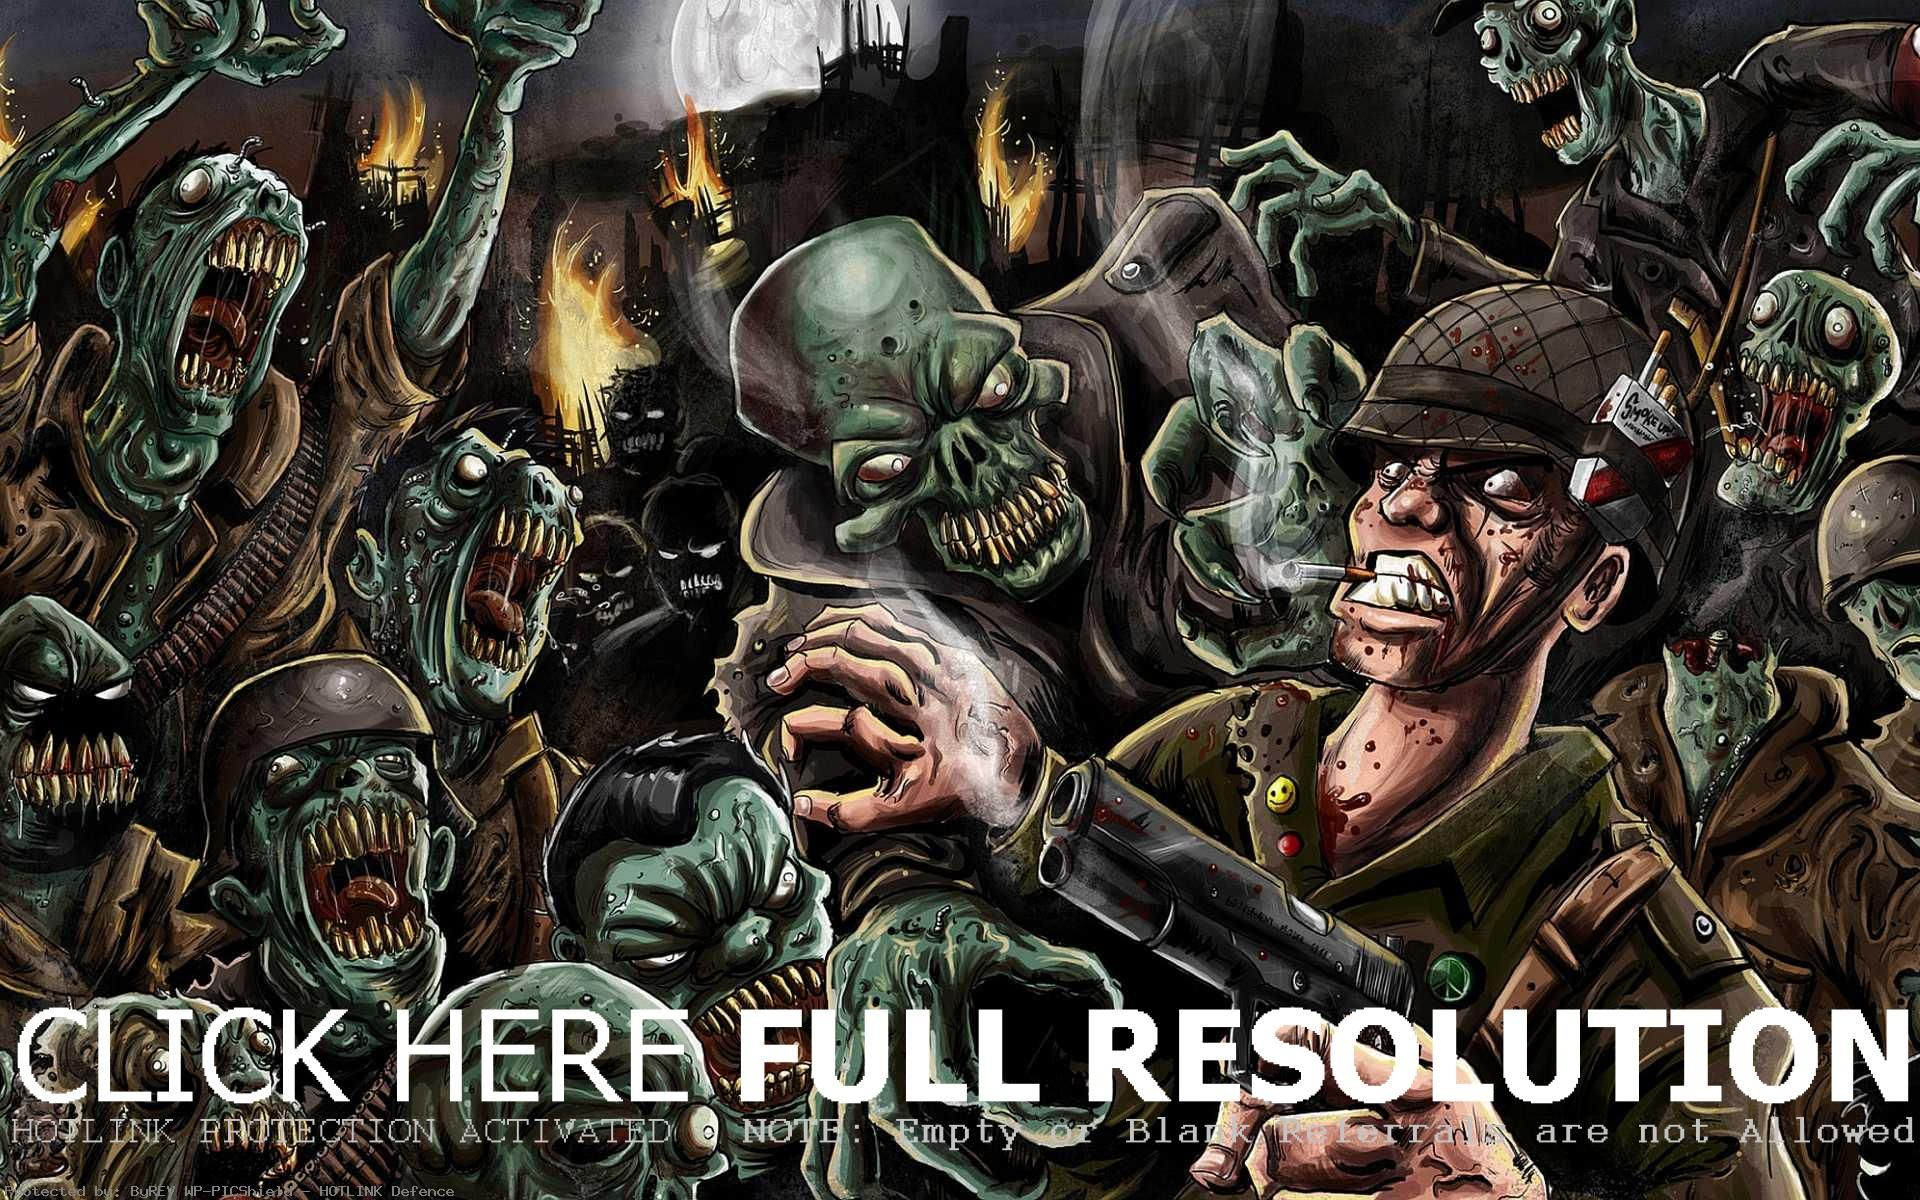 Black Ops Zombies Wallpapers Group 1900 1200 Zombie Wallpapers Hd 48 Wallpapers Adorable Wallpapers Zombie Wallpaper Zombie Cartoon Zombie Background